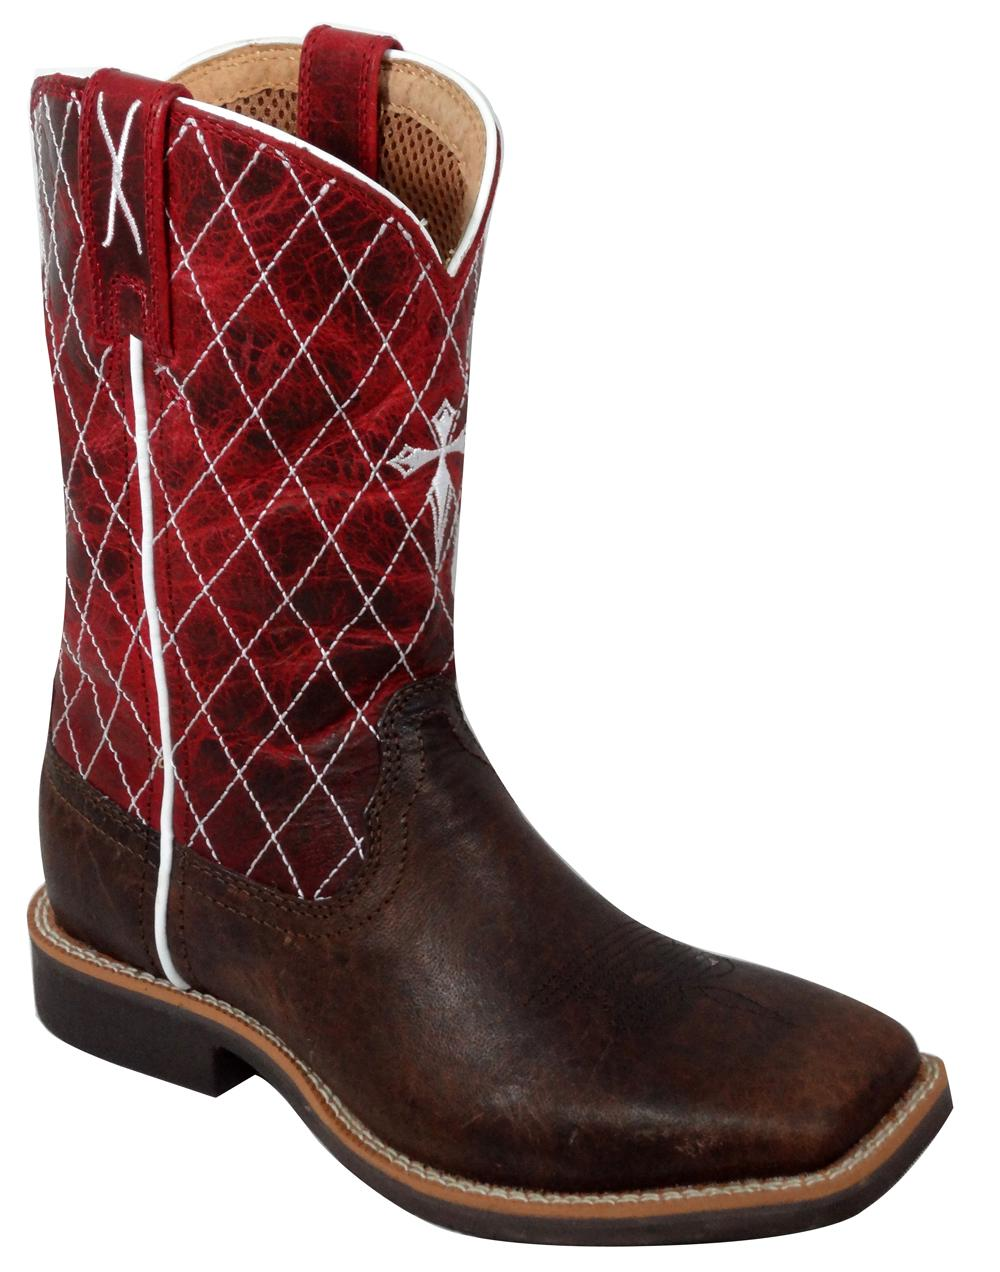 Youth Twisted X Chocolate & Red Pull-On Cowboy Boots